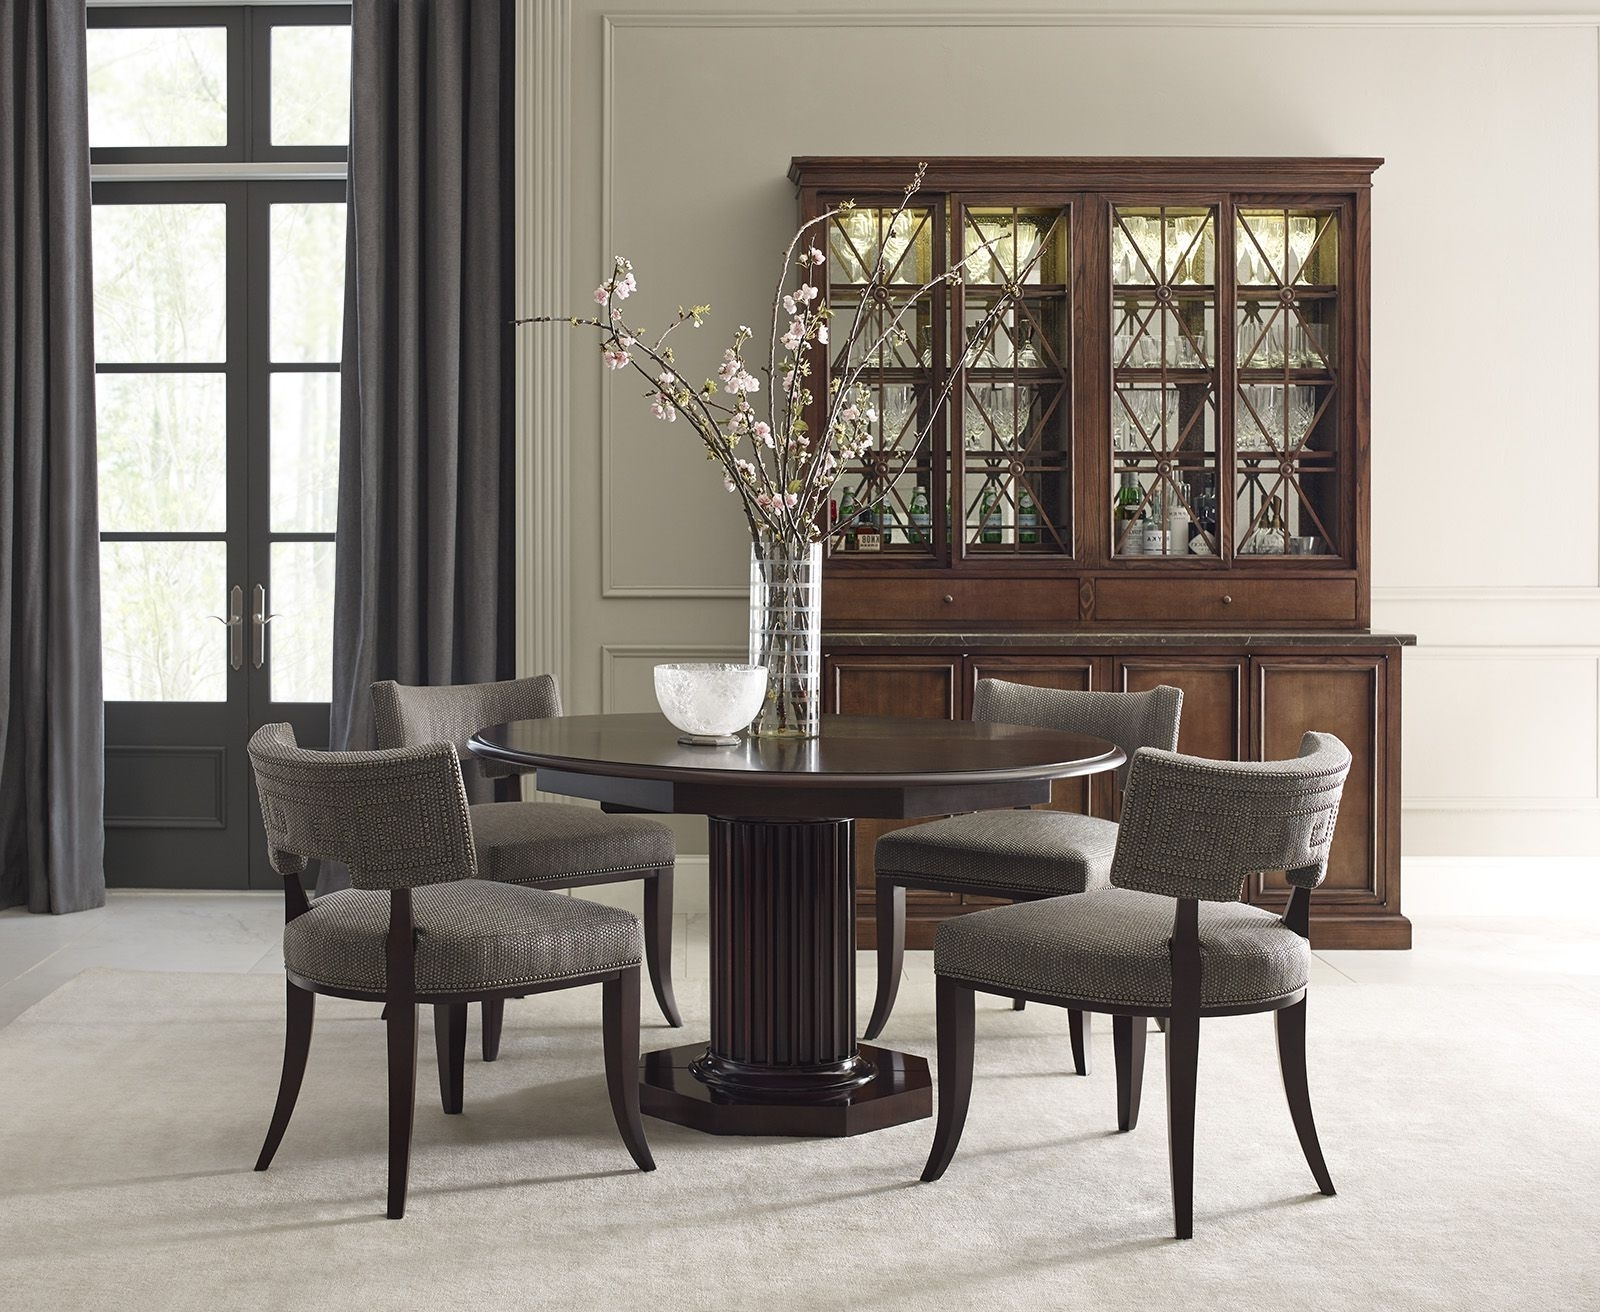 The Saint Giorgio Dining Chairs, Eden Roc Dining Table, Rock Crystal Inside Best And Newest Crystal Dining Tables (View 18 of 25)